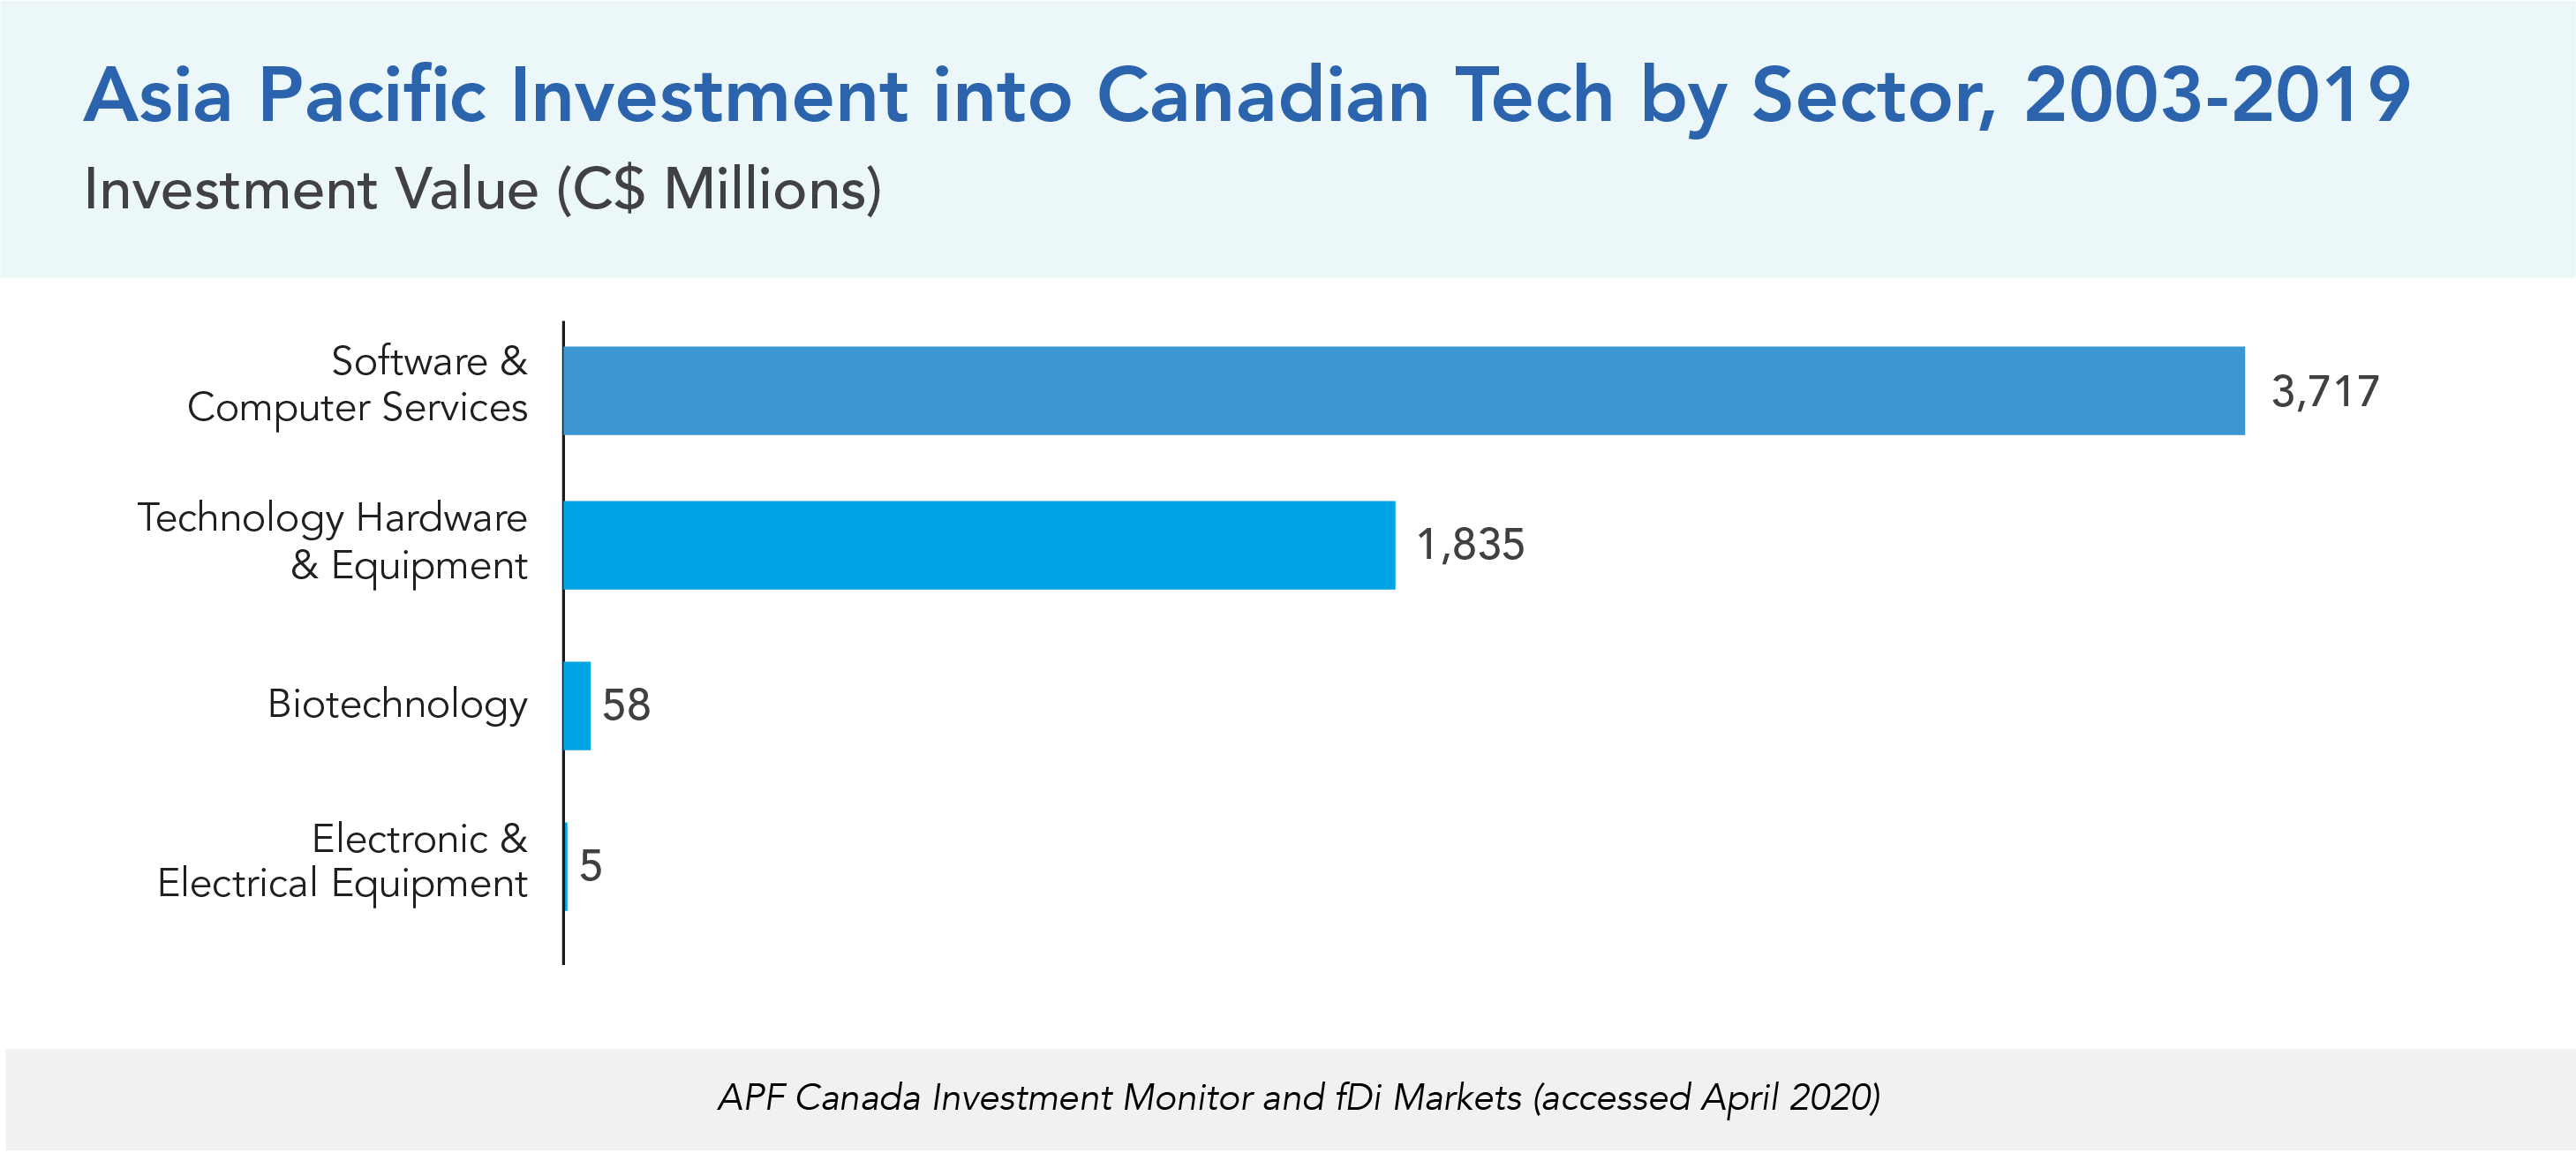 Asia Pacific Investment into Canadian Tech by Sector, 2003-2019